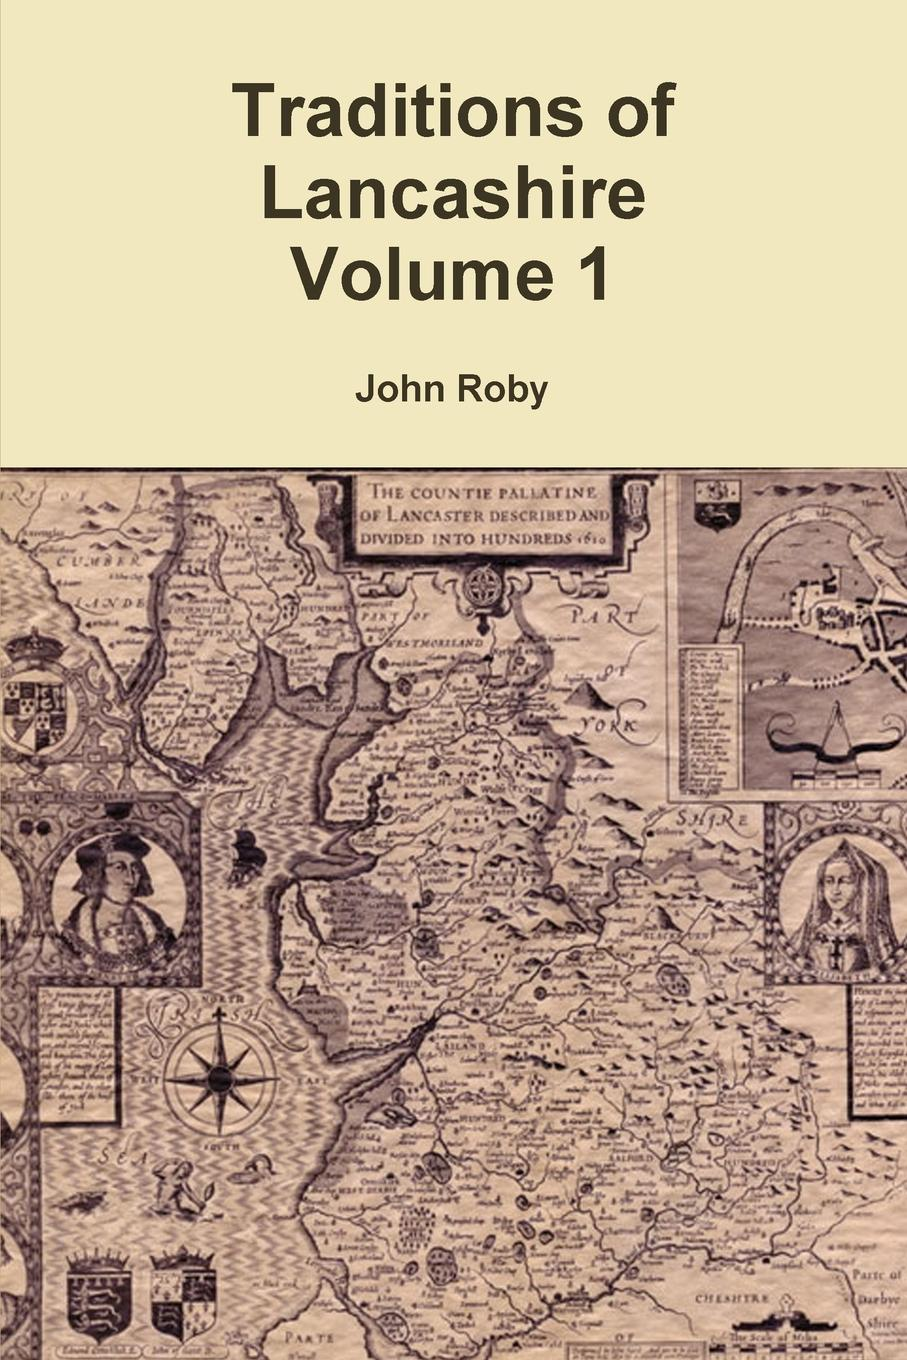 John Roby Traditions of Lancashire Volume 1 long john silver volume 1 lady vivian hastings